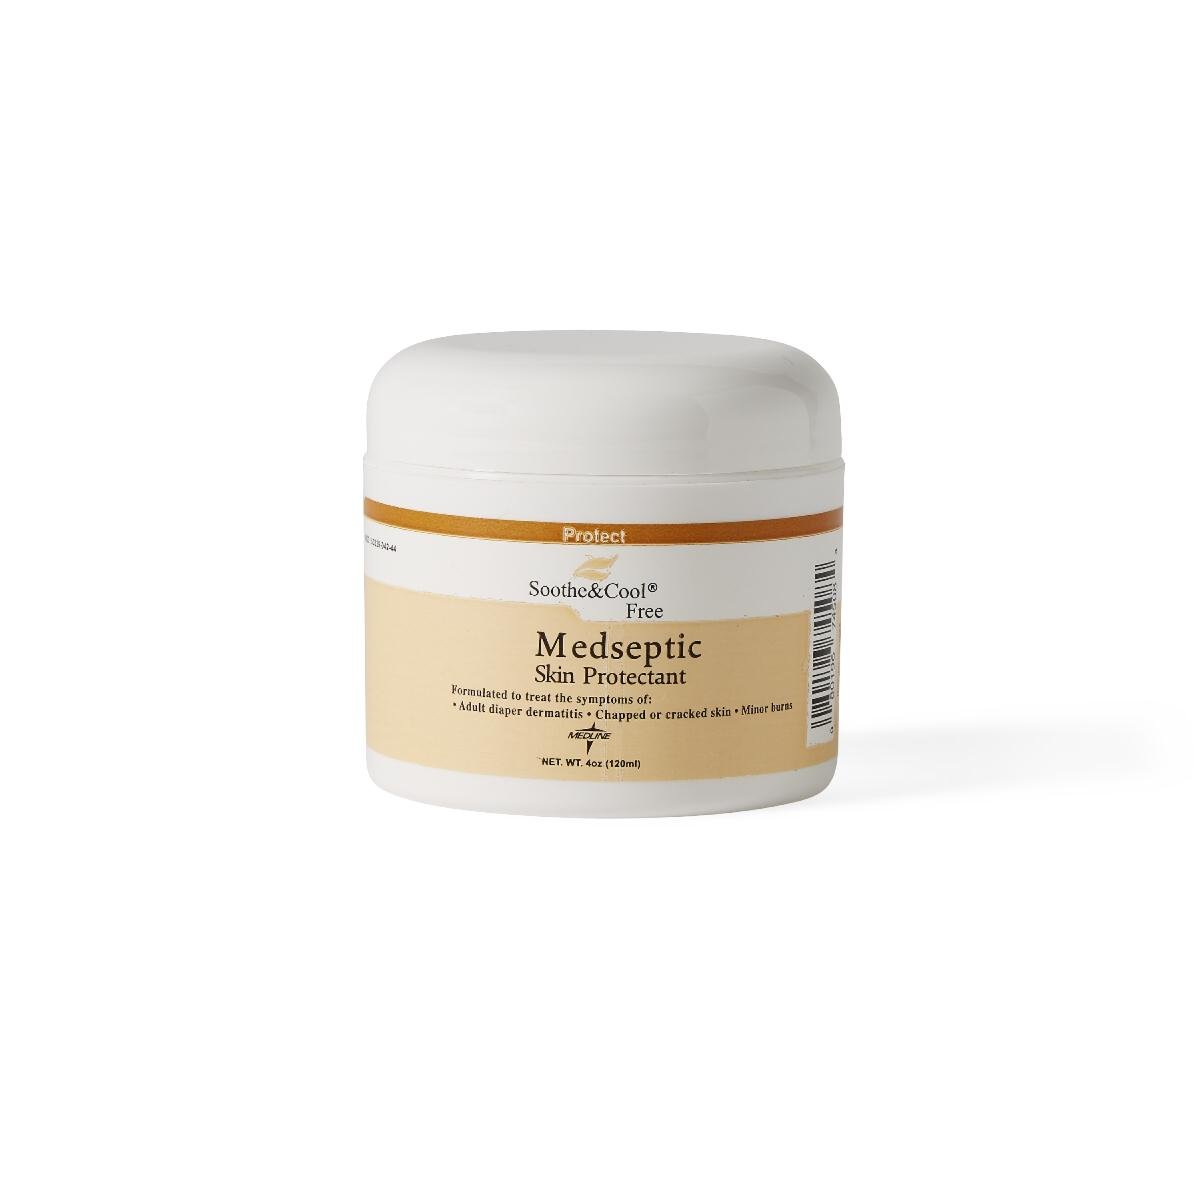 Detroit Mall Medseptic Skin Protectant Cream 24 of Max 71% OFF Case